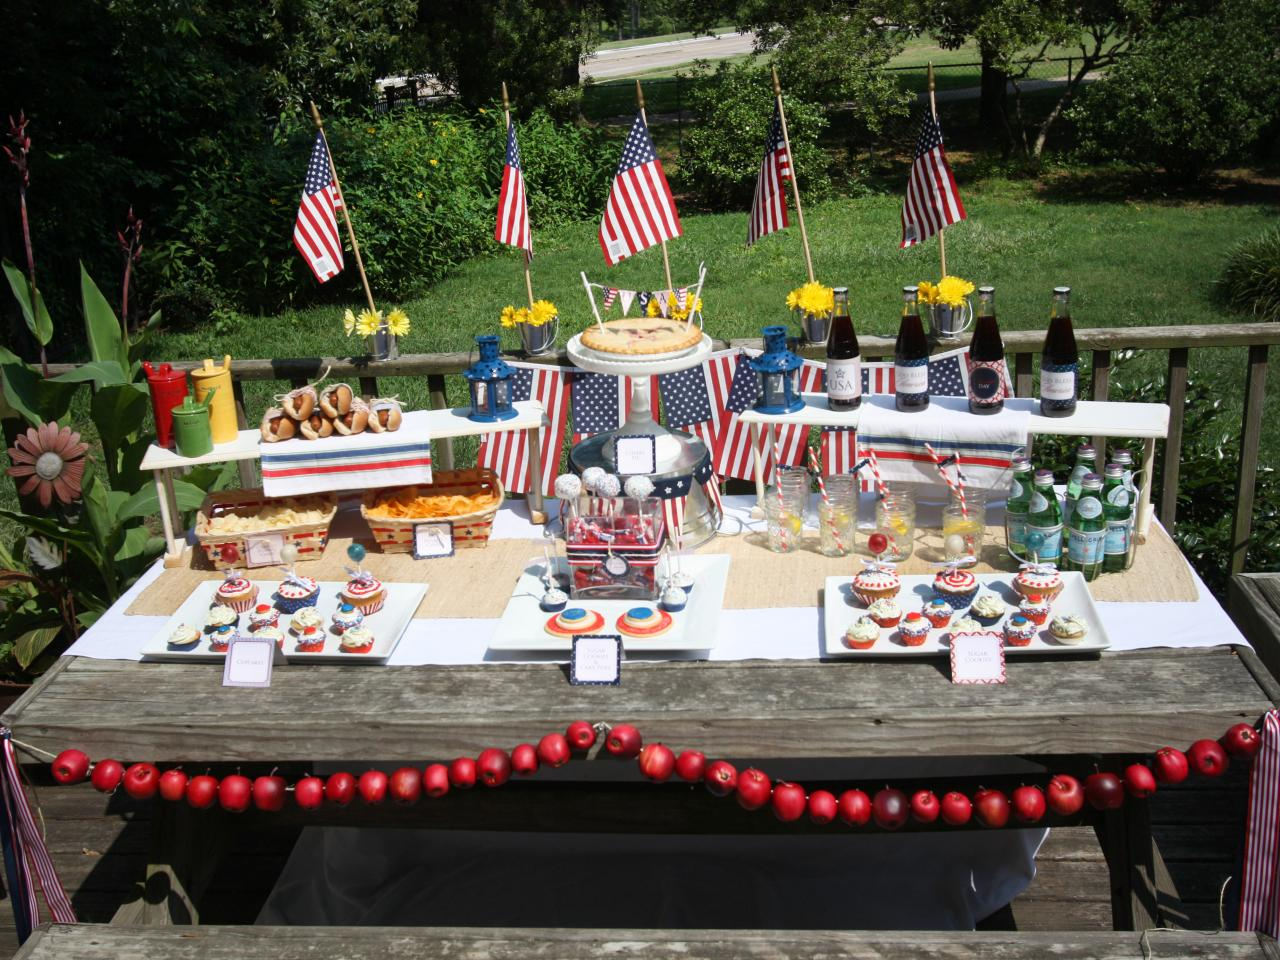 Backyard party ideas southern lifestyle celebrity for 4th of july decorating ideas for outside